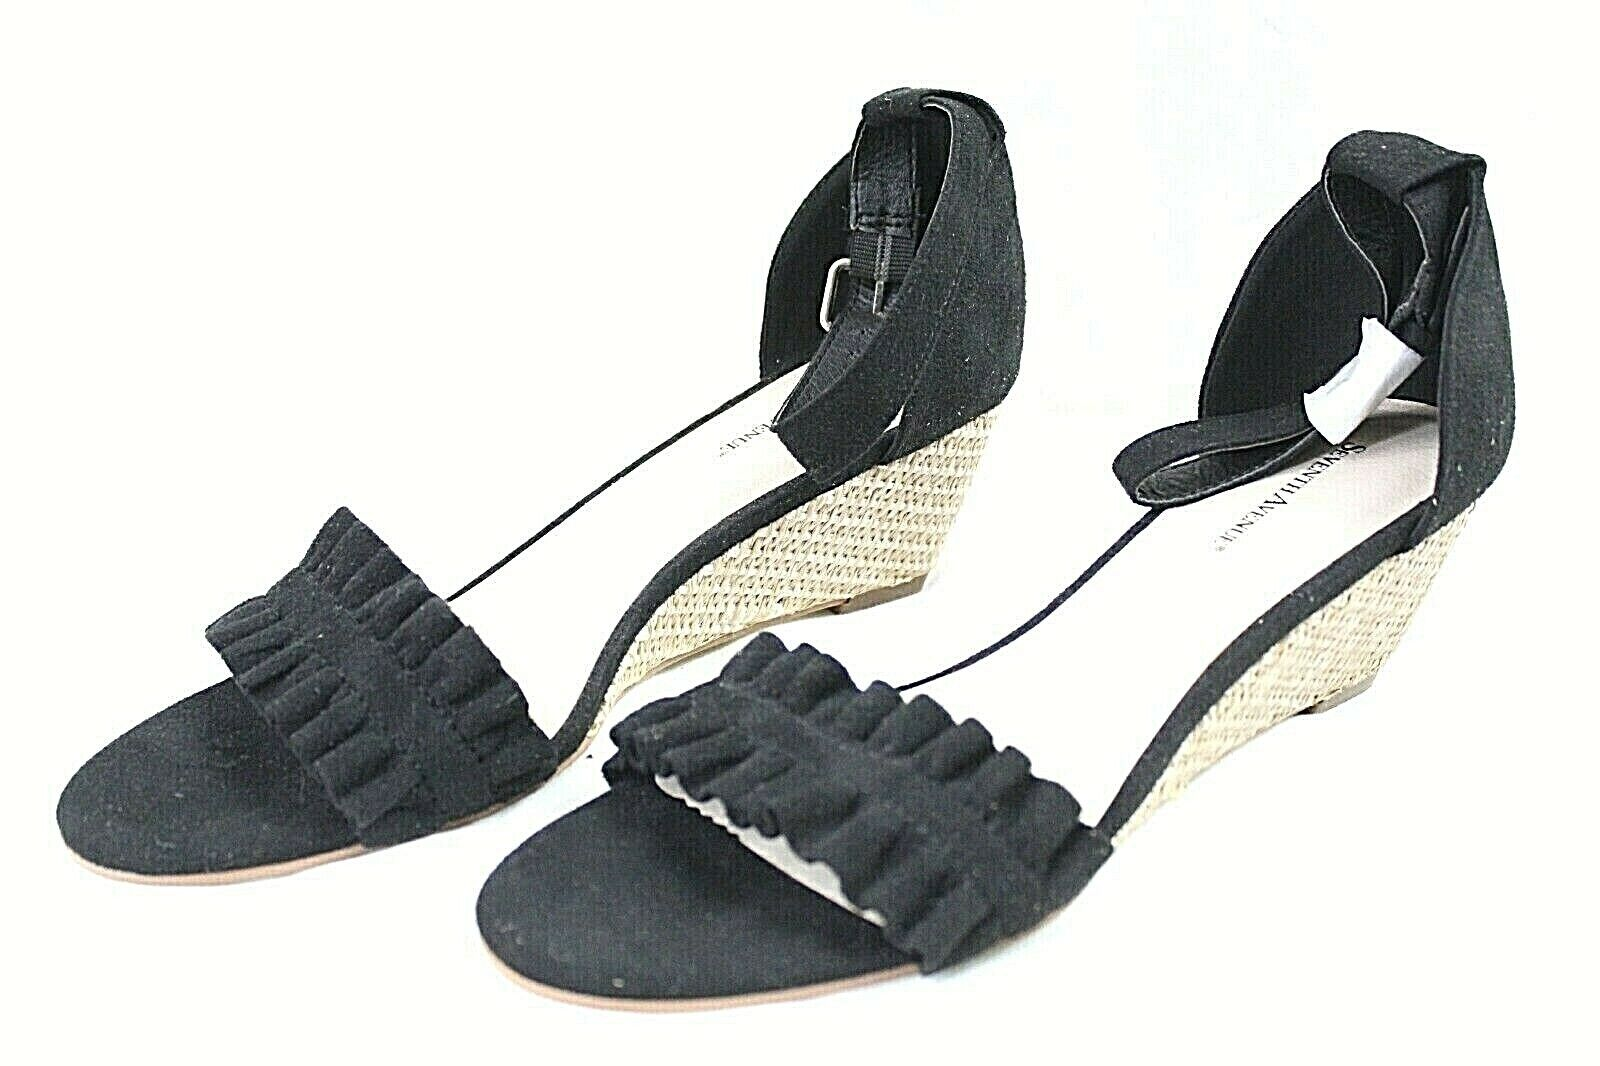 SEVENTH AVENUE womens 2 in WEDGE heels shoes size 9 M black faux leather NEW